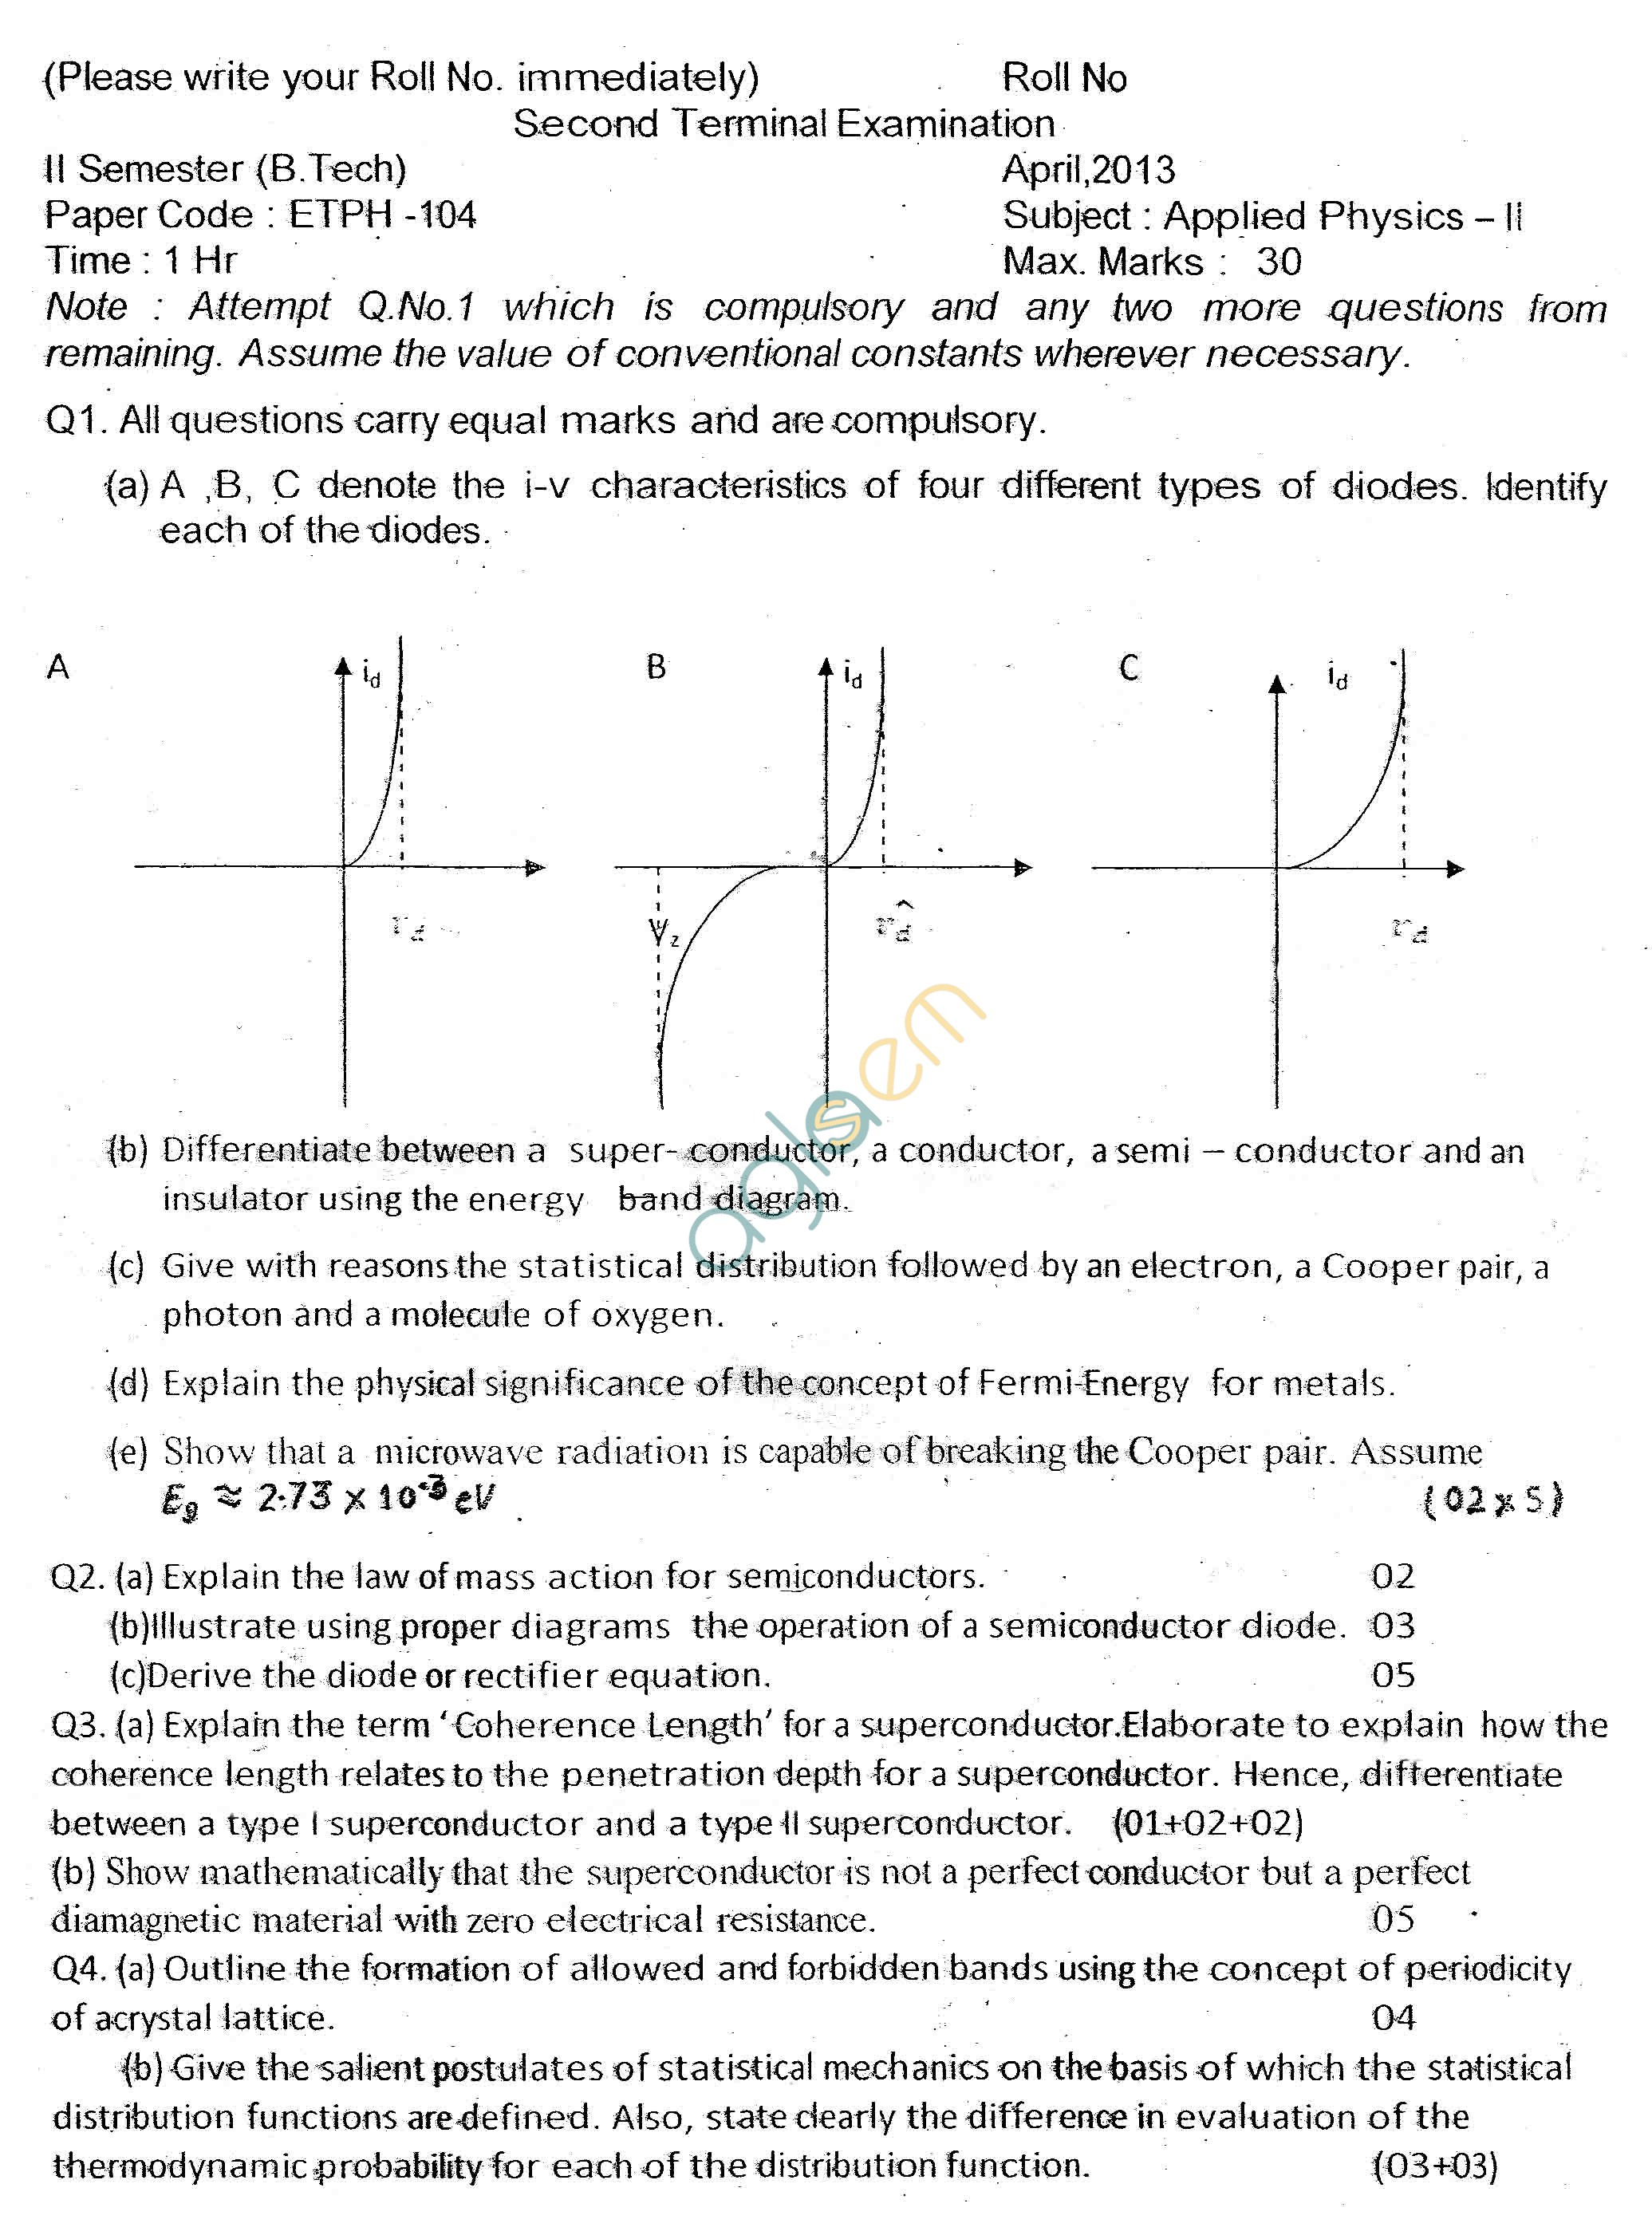 GGSIPU Question Papers Second Semester – Second Term 2013 – ETPH-104